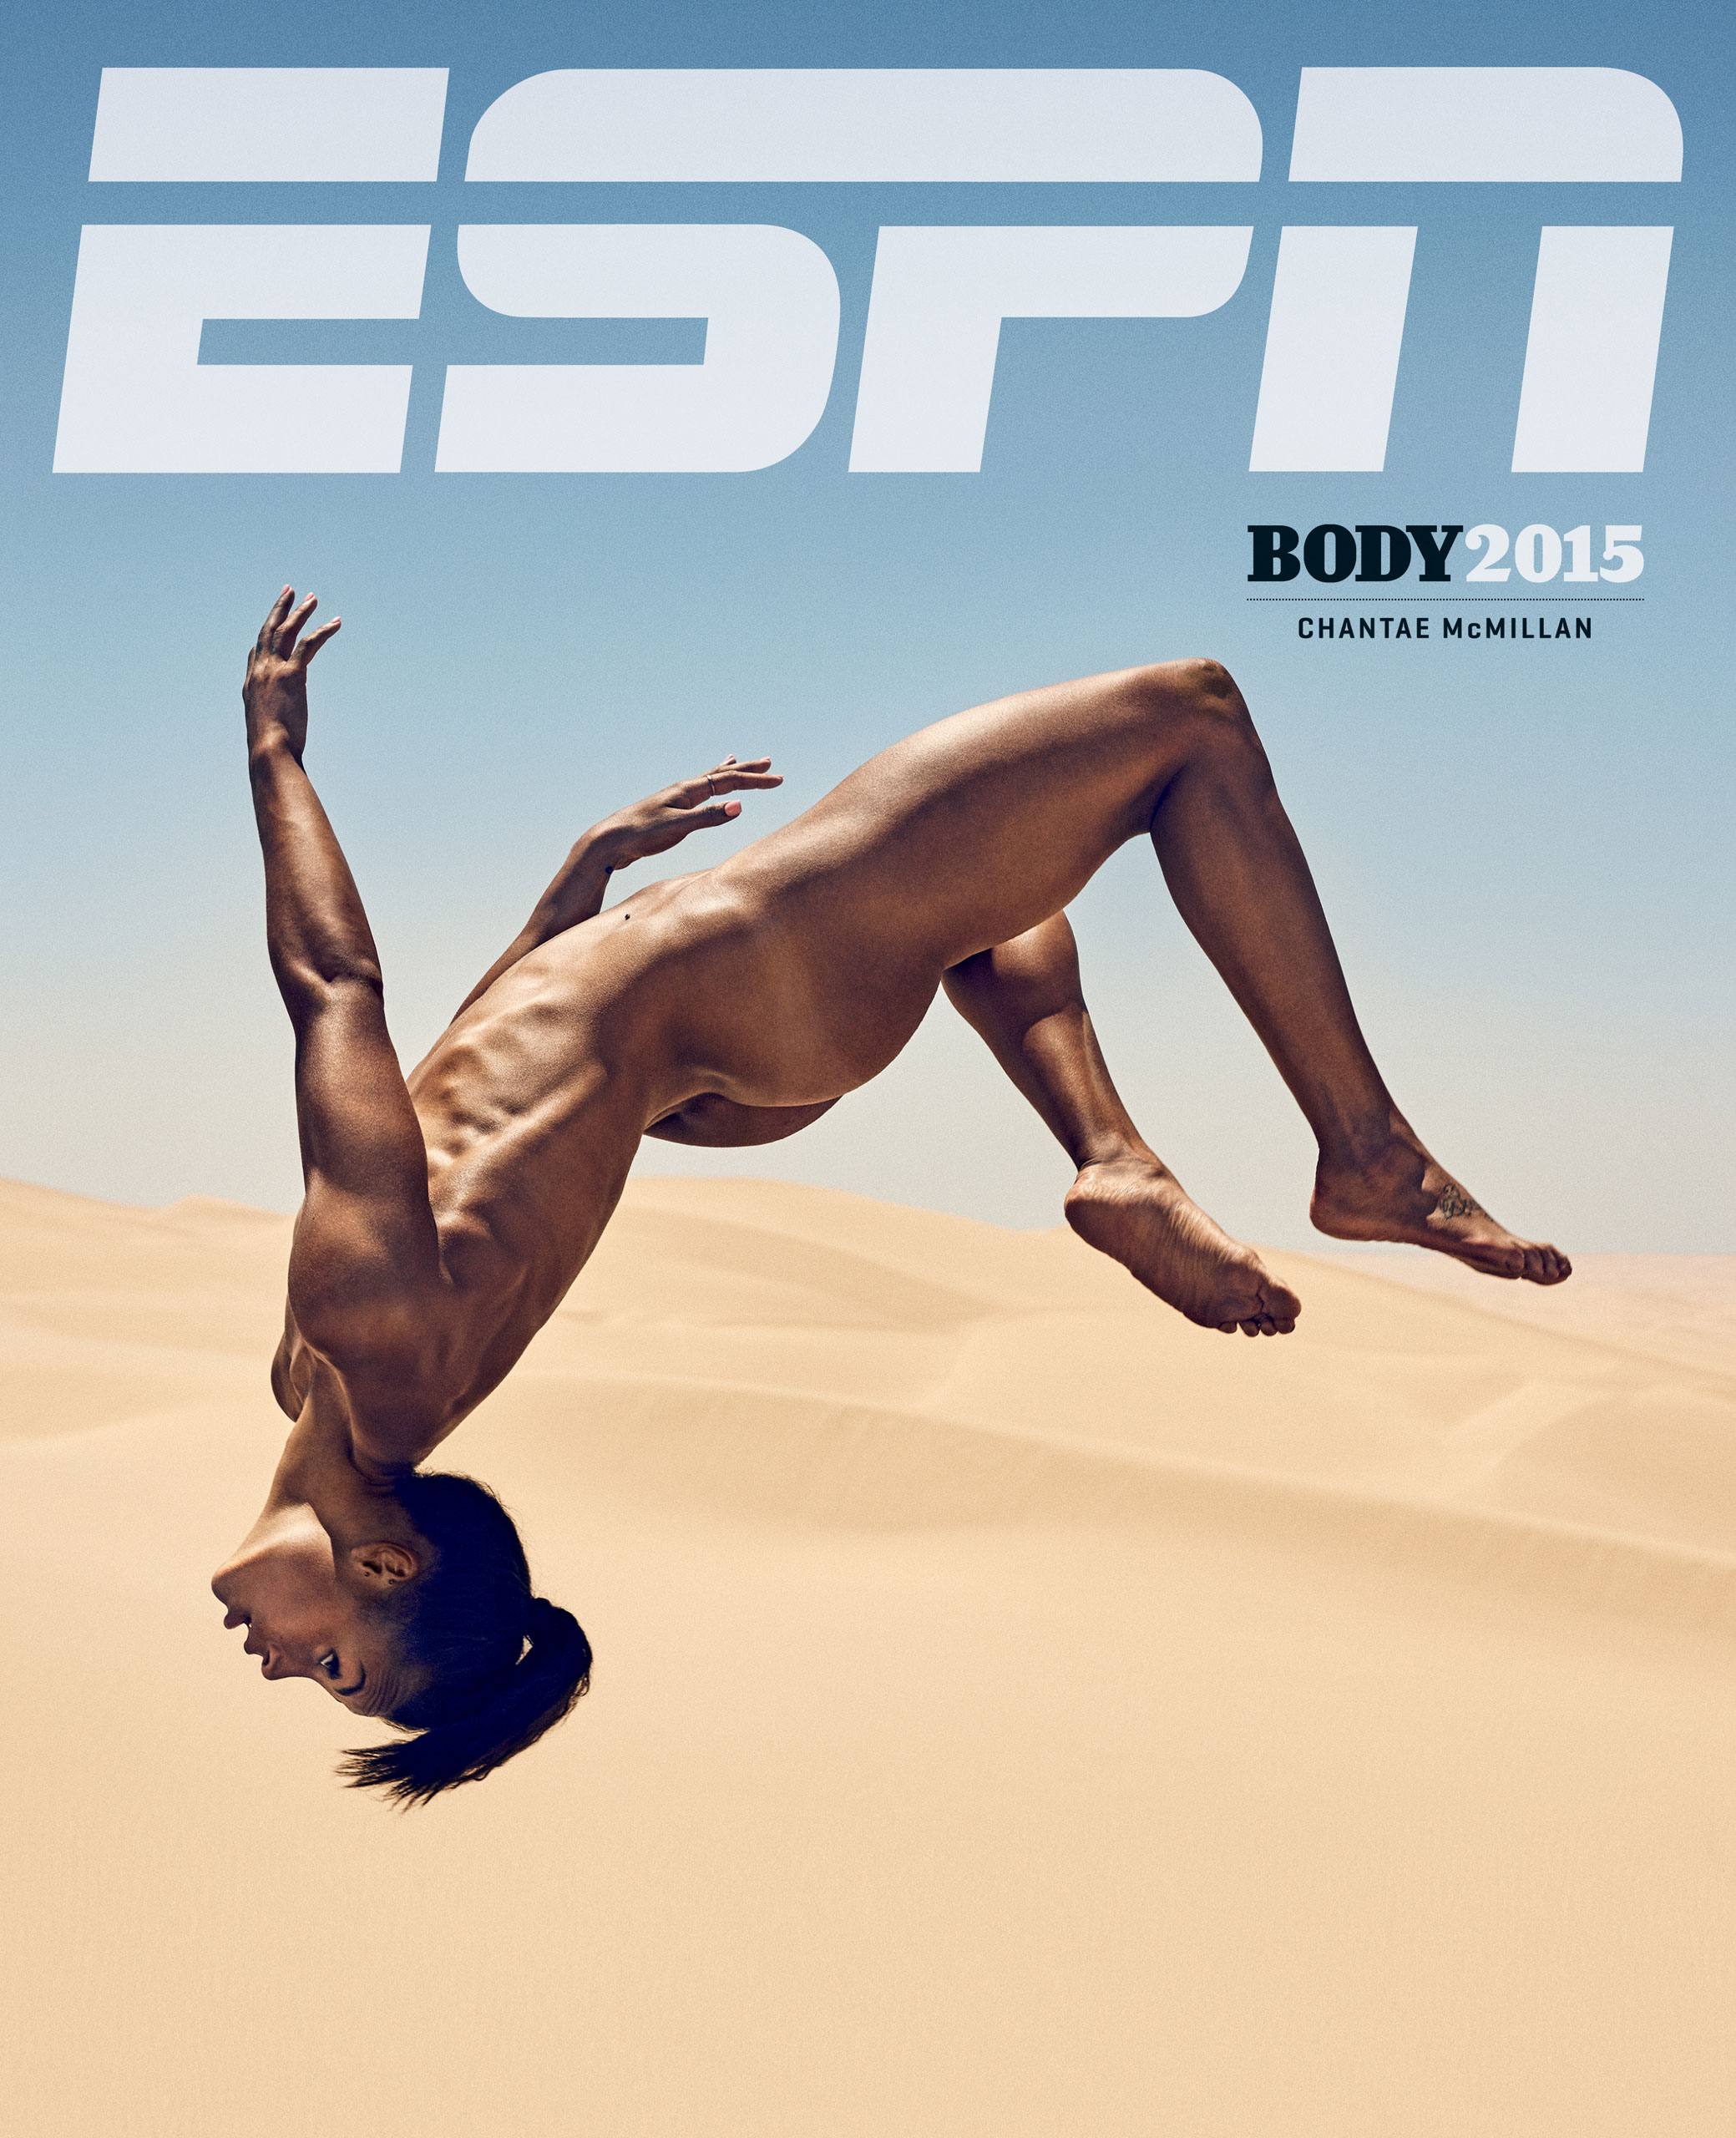 ESPN The Magazine, Body Issue.                               Photograph by Carlos Serrao.                                                              Chantae [McMillan] is a heptathlete, so I wanted to find a location that would enable her to do some aspects of her sport. I was inspired by the long jump sand pit, and that was a deciding factor in shooting in the desert sand dunes. Also, I like to shoot as much in camera as I can without post compositing, so it was important for her to be actually able to run, jump and throw. Unfortunately for us, this assignment was in the middle of the summer, so temperatures out there where 108 degrees Fahrenheit by 9:30 a.m. Fortunately for us, Chantae is amazing and extremely comfortable with herself, and just was willing to try anything for the camera.                               —Carlos Serrao, Photographer